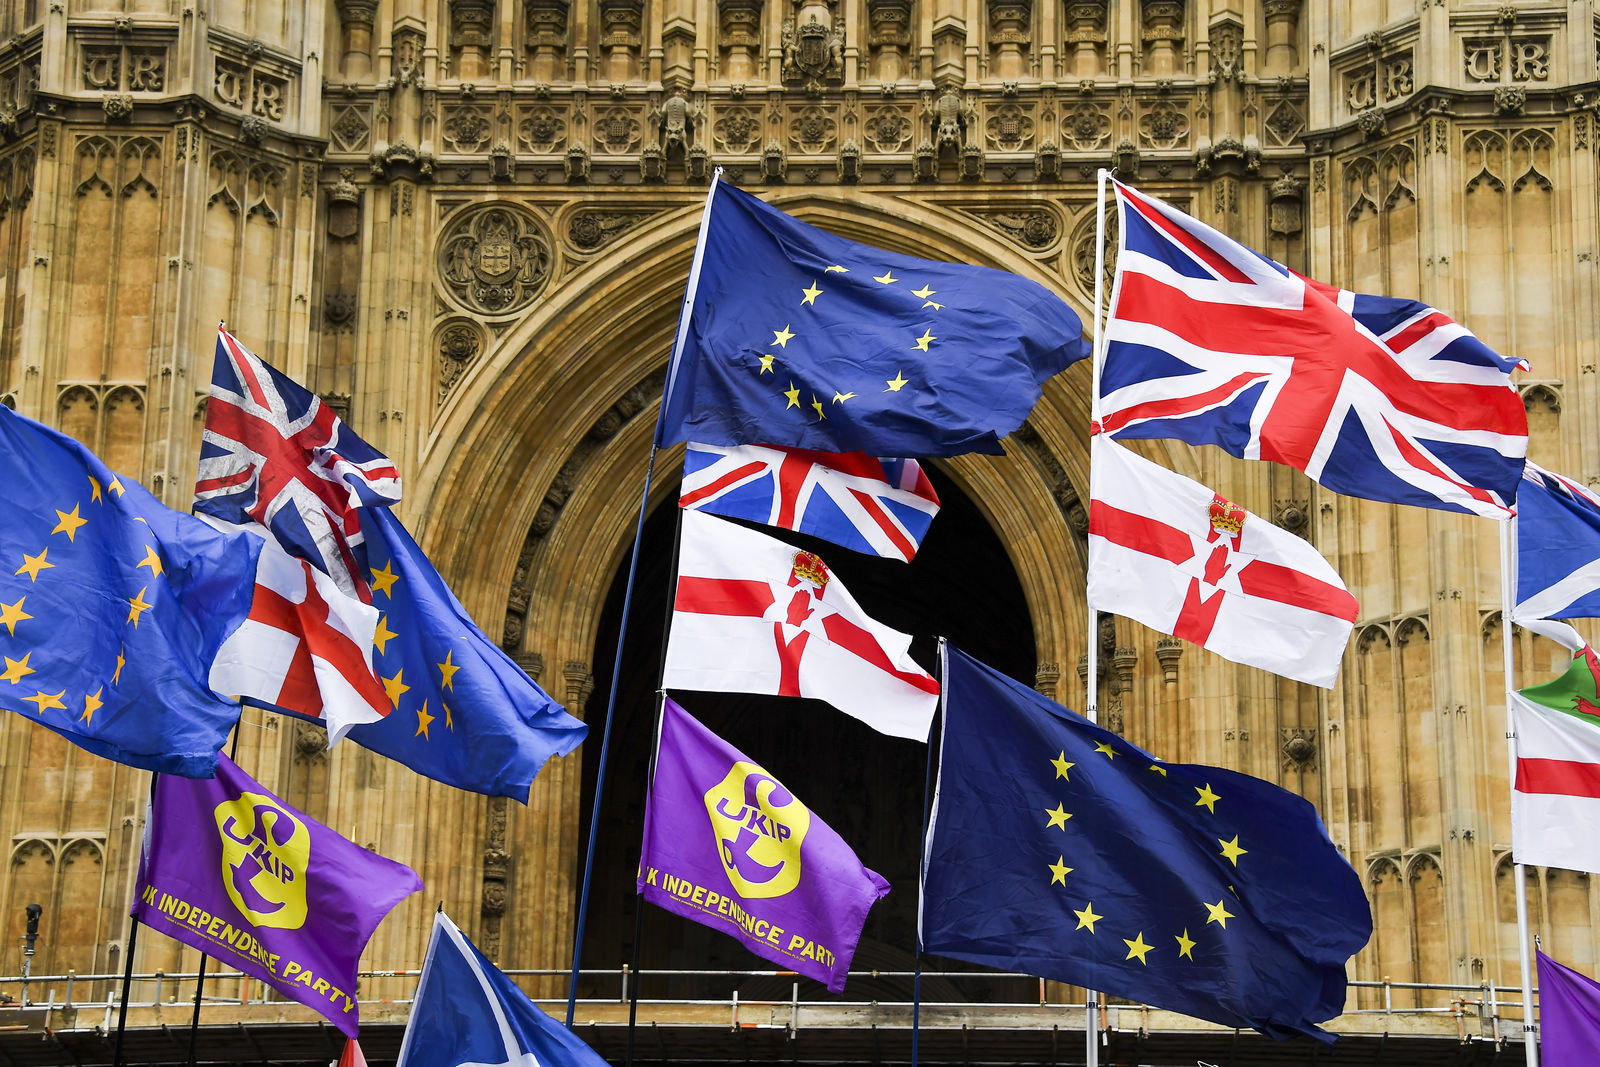 Various flags flutter in the wind outside the houses of Parliament in London, Monday, Oct. 21, 2019.  There are just 10 days until the U.K. is due to leave the European bloc on Oct. 31.(AP Photo/Alberto Pezzali)